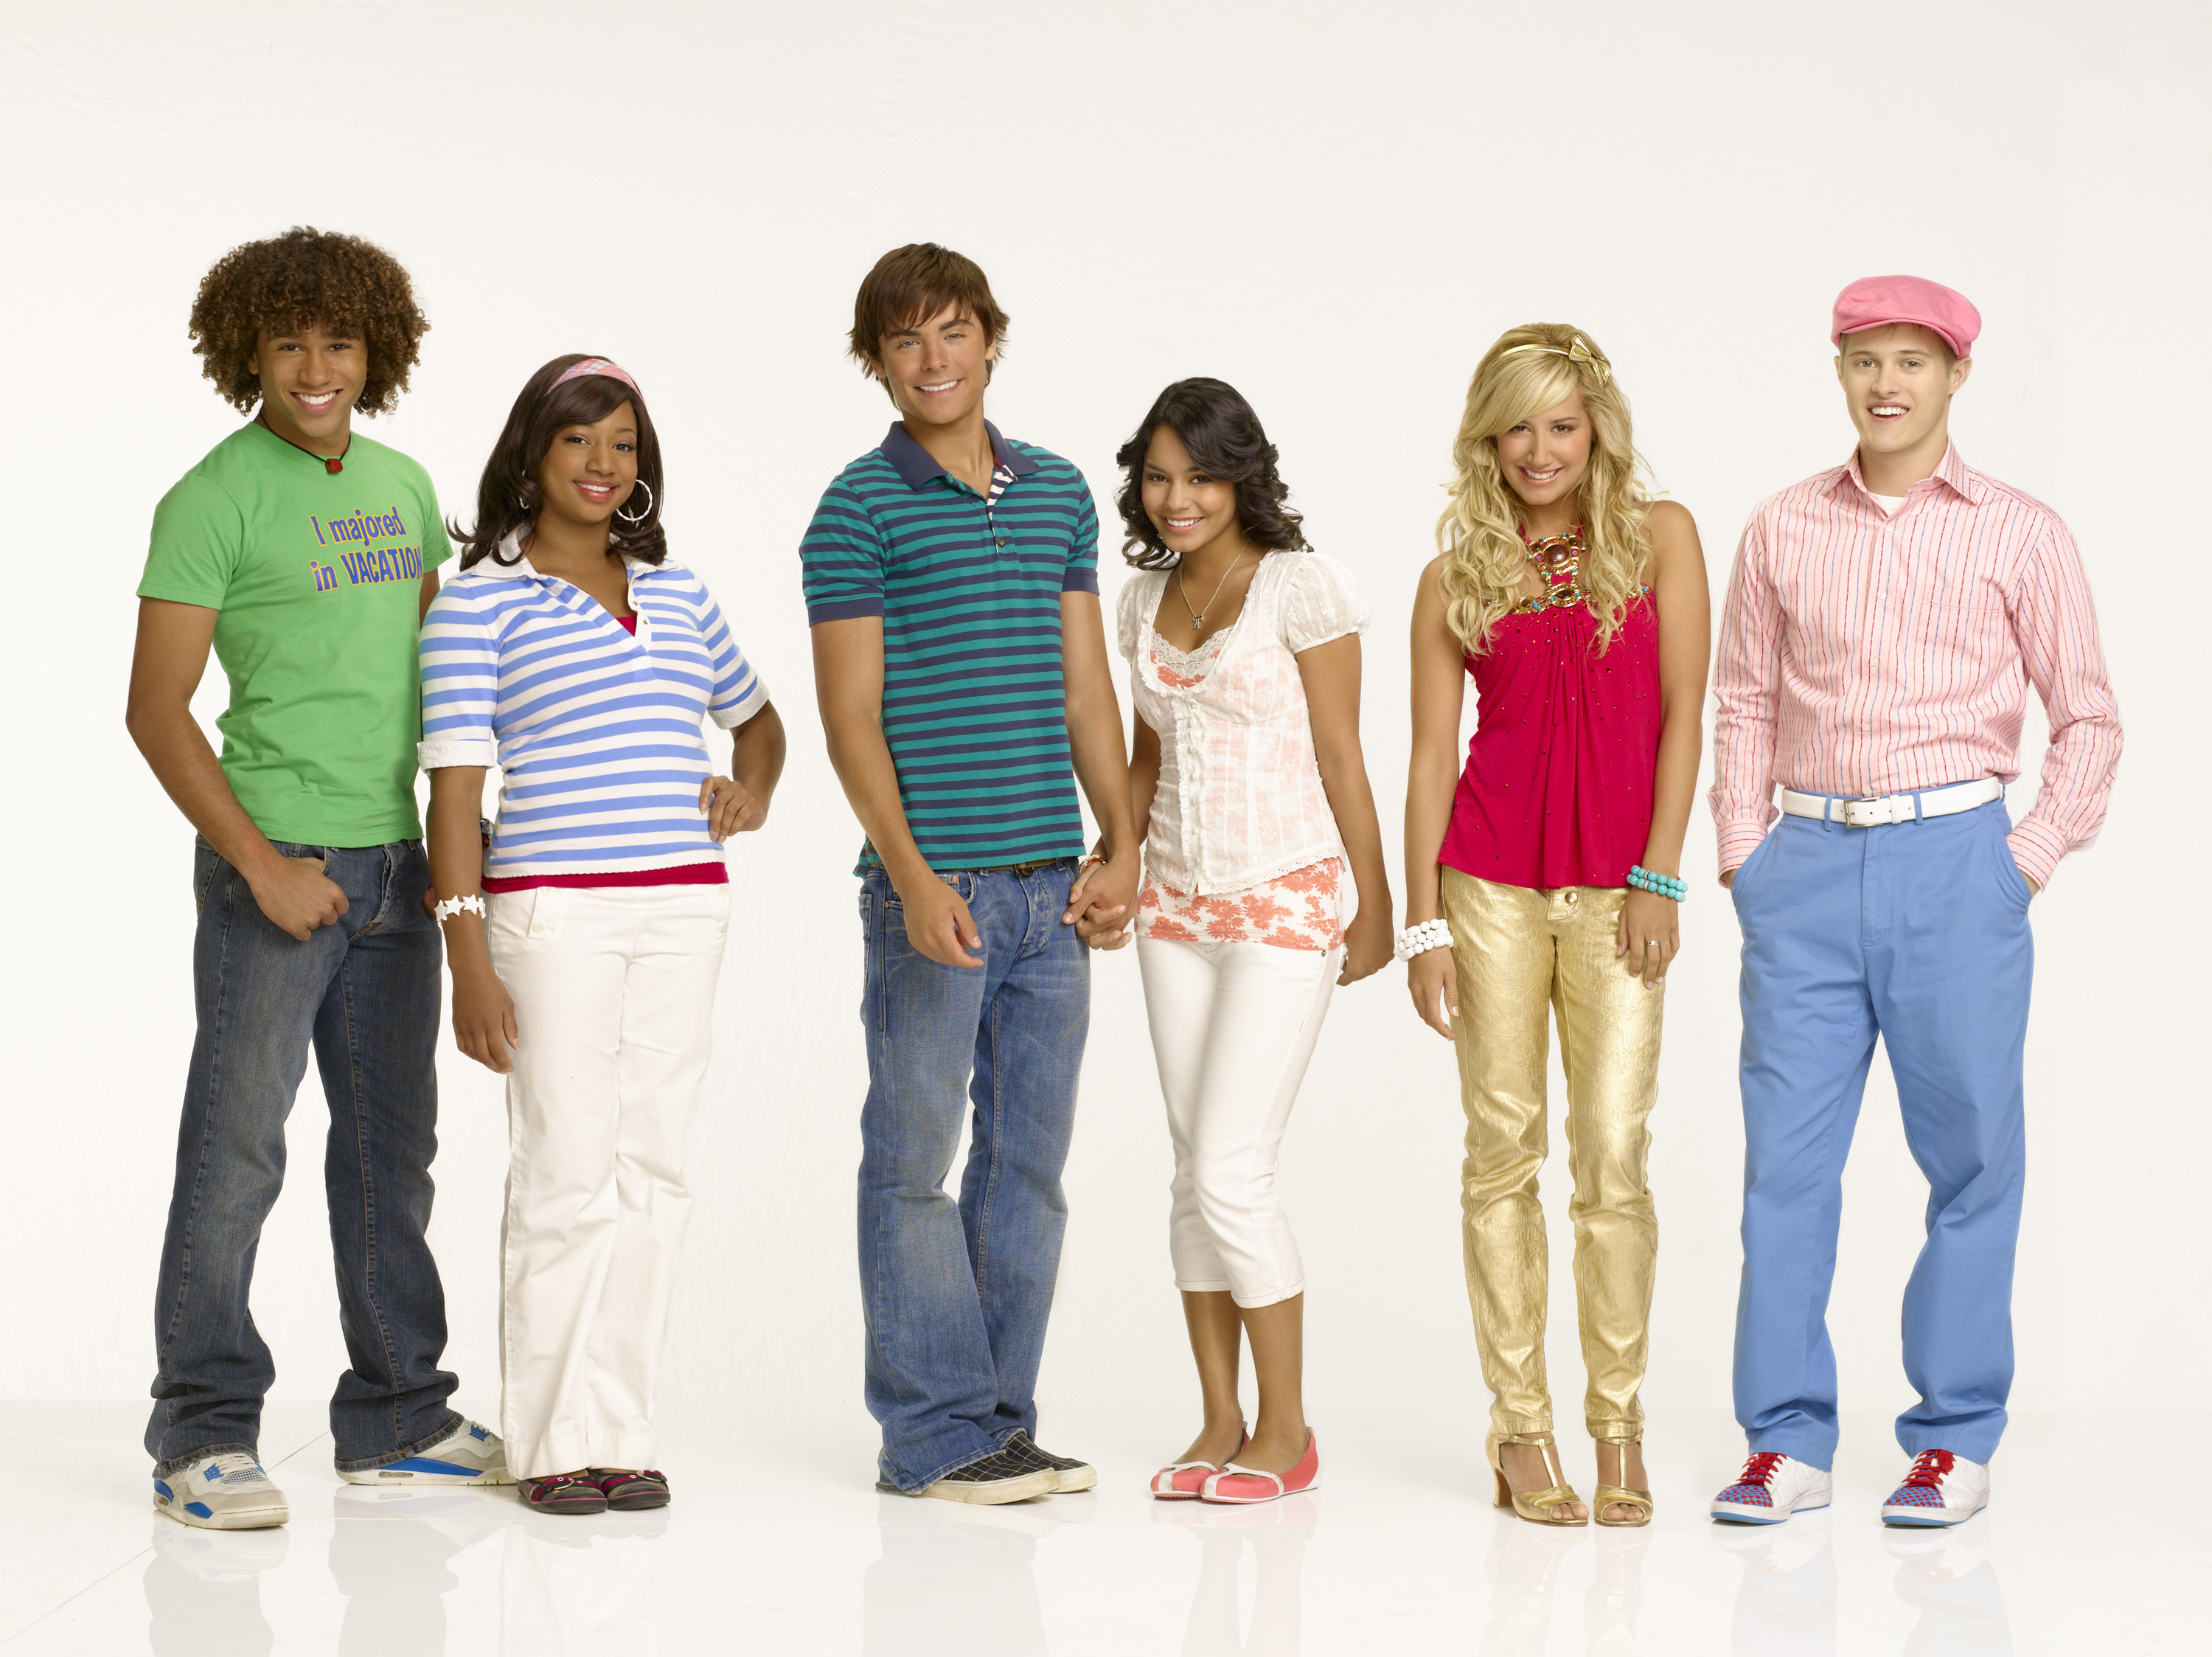 "HIGH SCHOOL MUSICAL 2 - Disney Channel's ""High School Musical 2"" stars Corbin Bleu as ""Chad Danforth,"" Monique Coleman as ""Taylor McKessie,"" Vanessa Hudgens as ""Gabriella Montez,"" Zac Efron as ""Troy Bolton,"" Ashley Tisdale as ""Sharpay Evans"" and Lucas Grabeel as ""Ryan Evans."" (DISNEY CHANNEL/ BOB D'AMICO)"